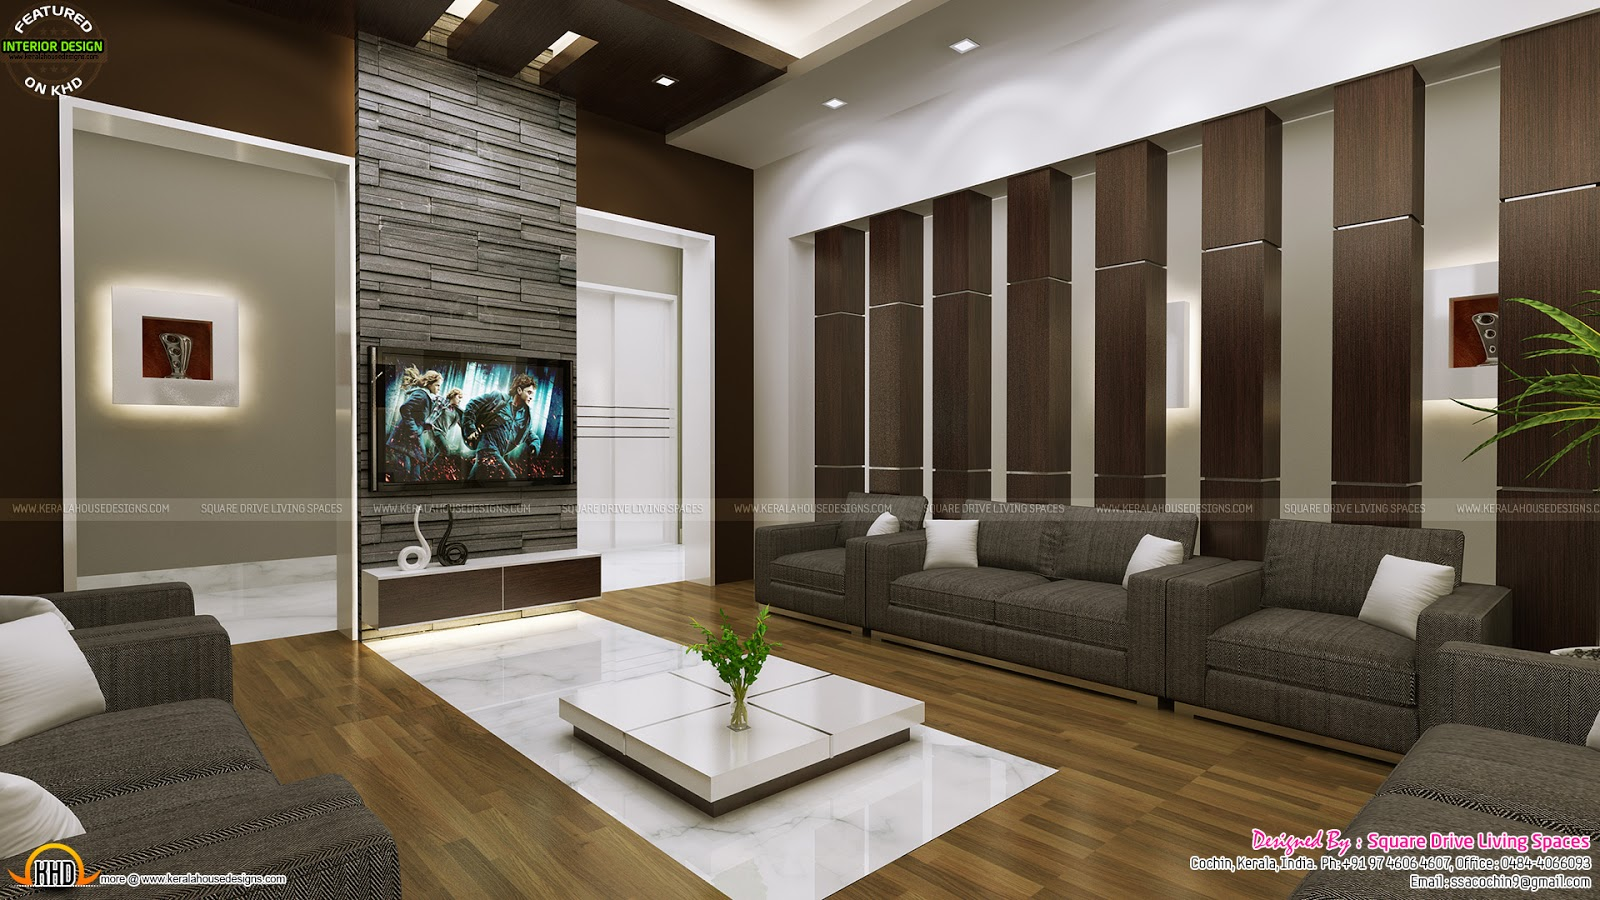 Attractive home interior ideas kerala home design and - House interior design ideas pictures ...